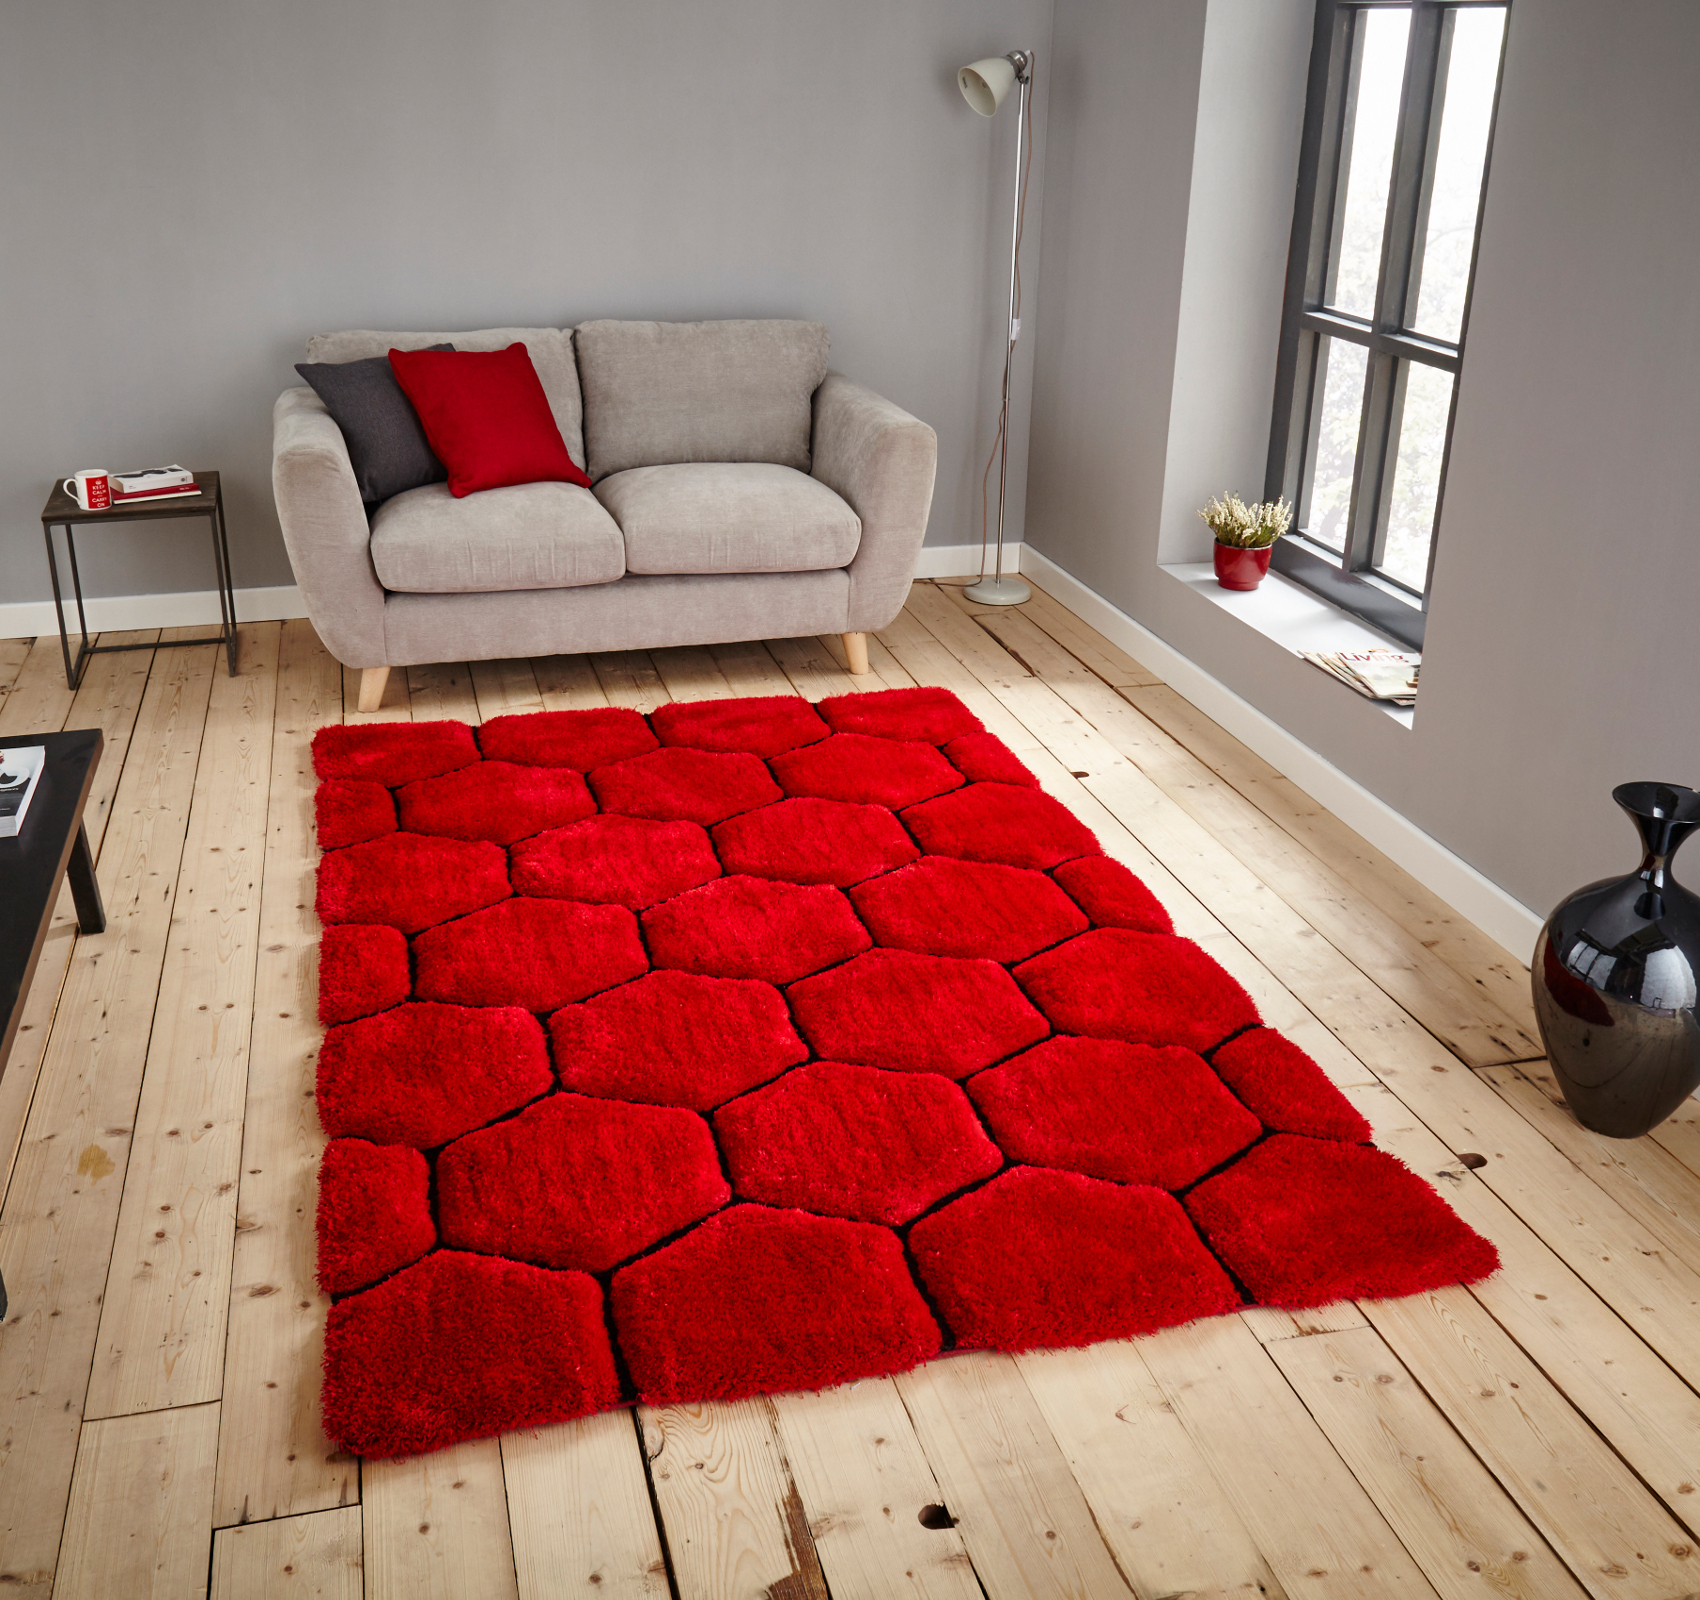 Le House Hand Carved Honeycomb Gy Rug Super Soft Hexagon